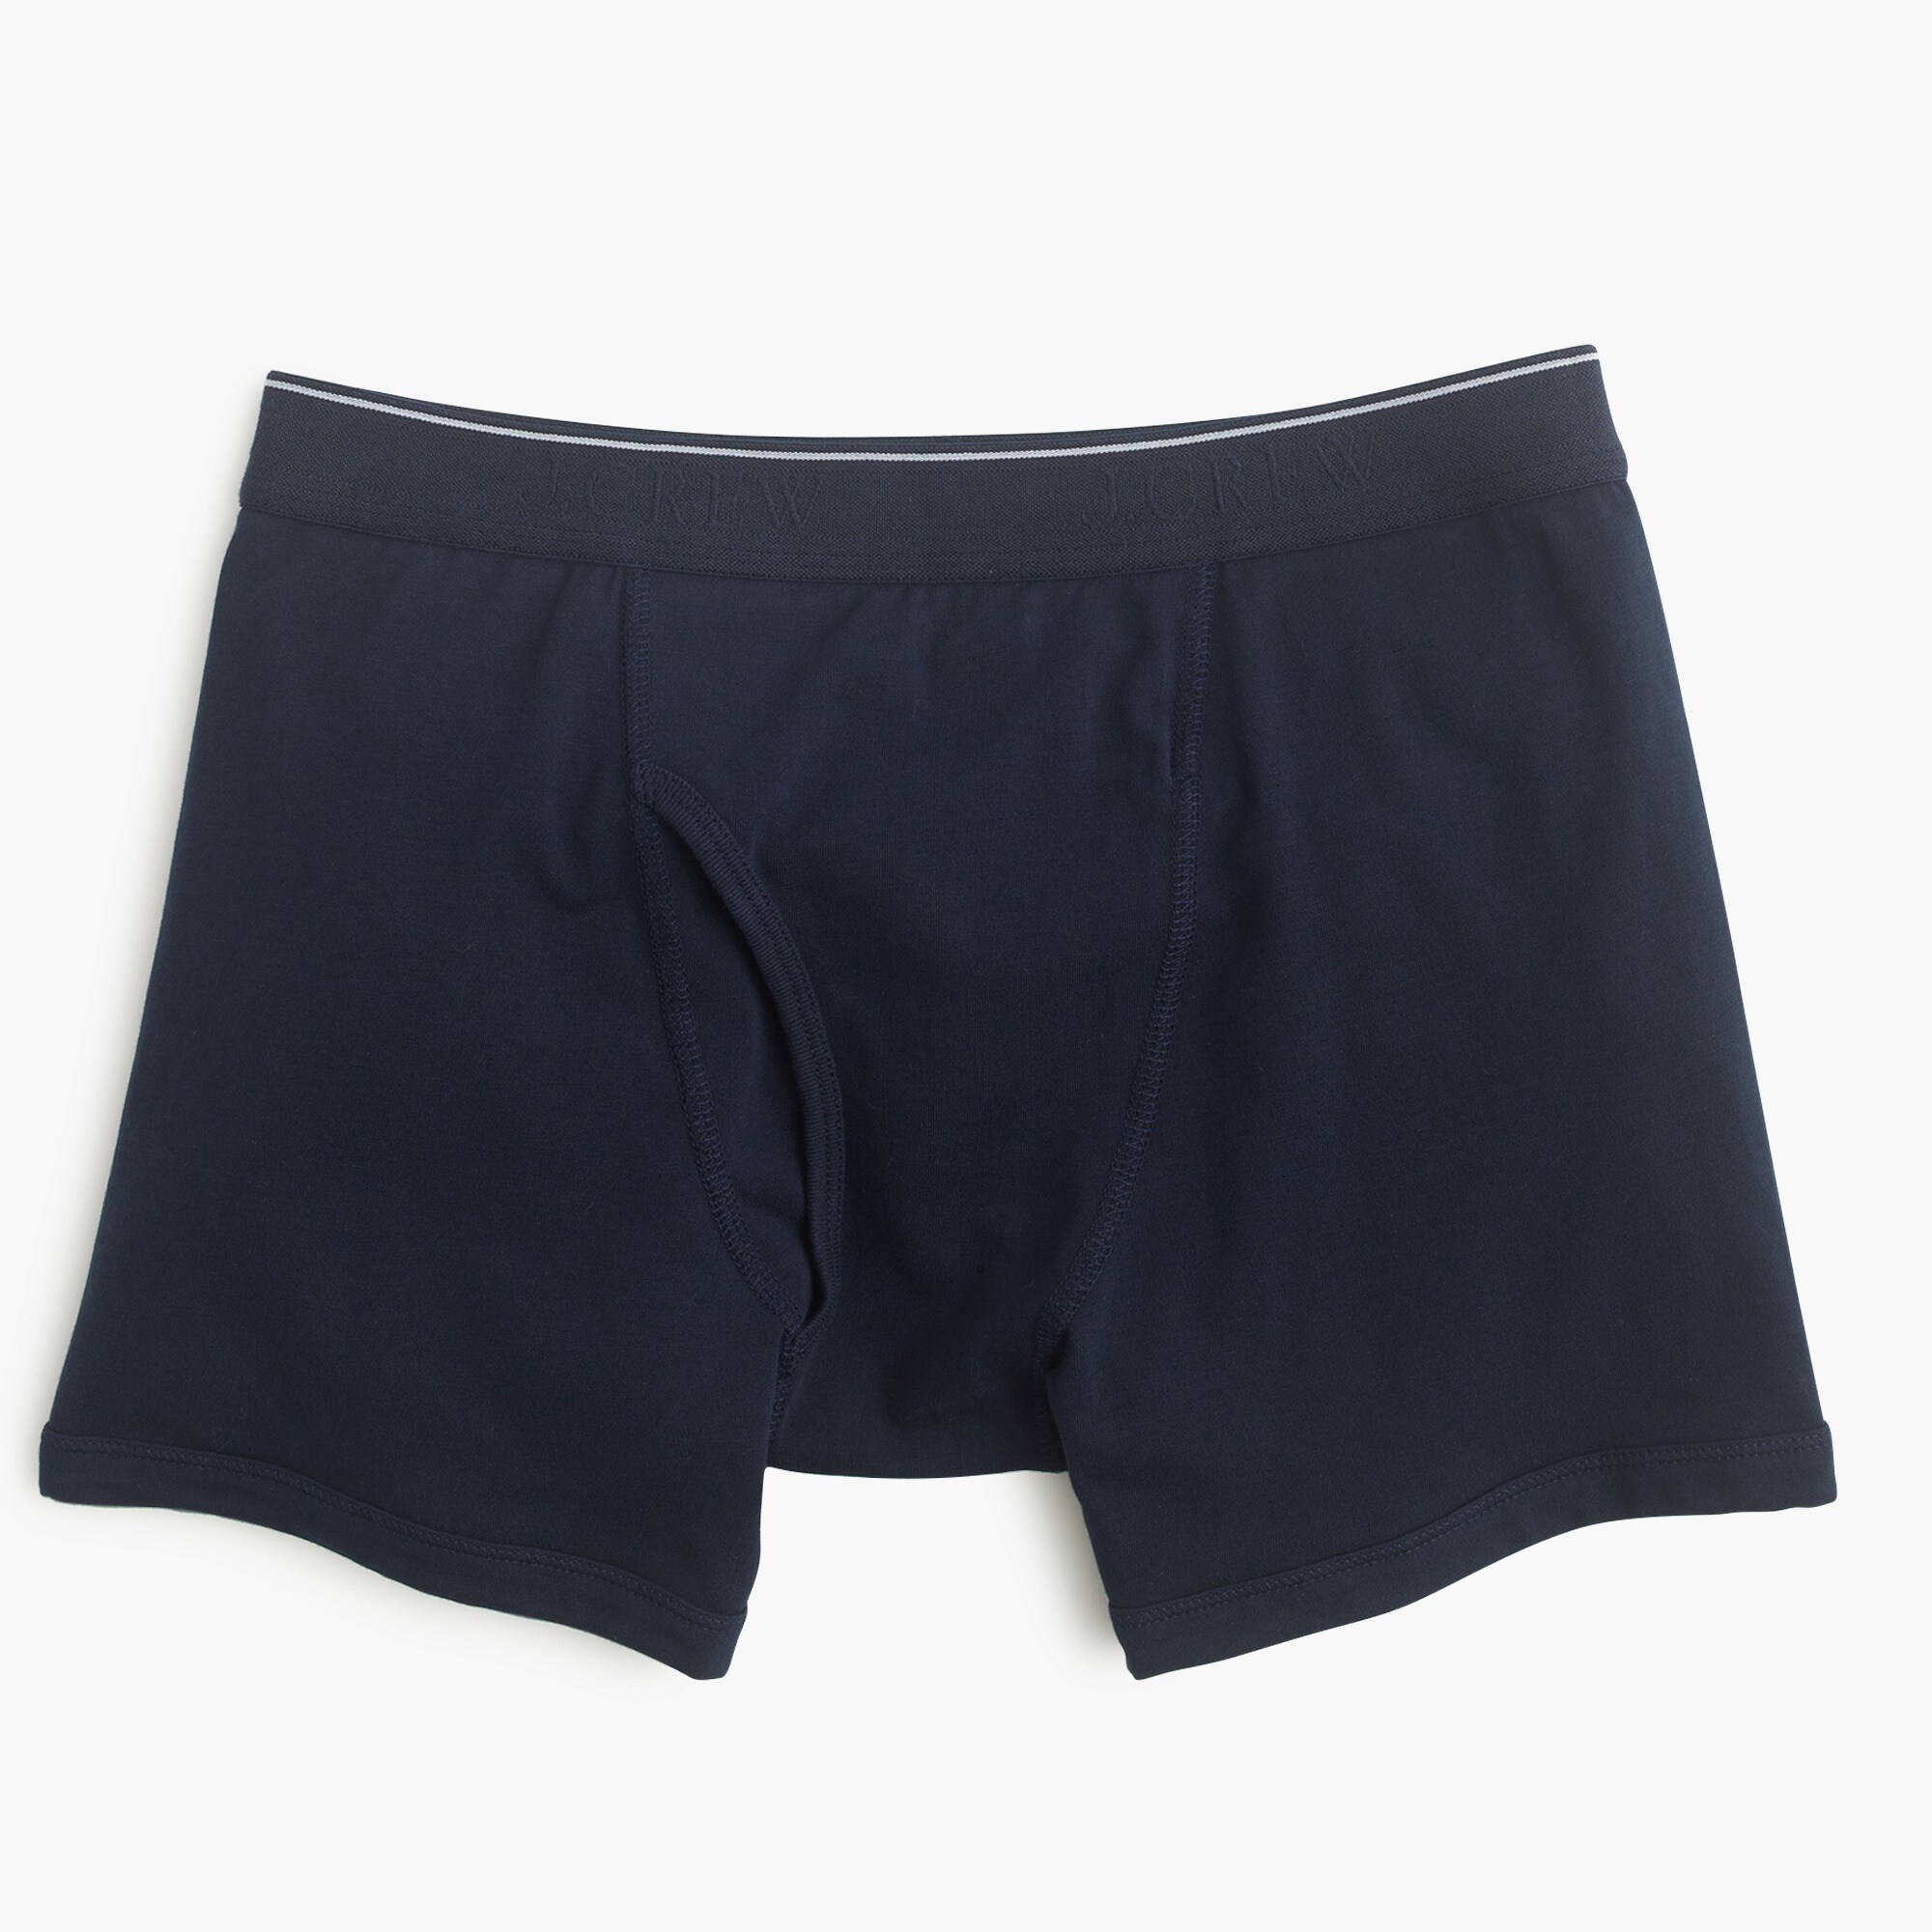 men's knit boxer briefs - men's lounge